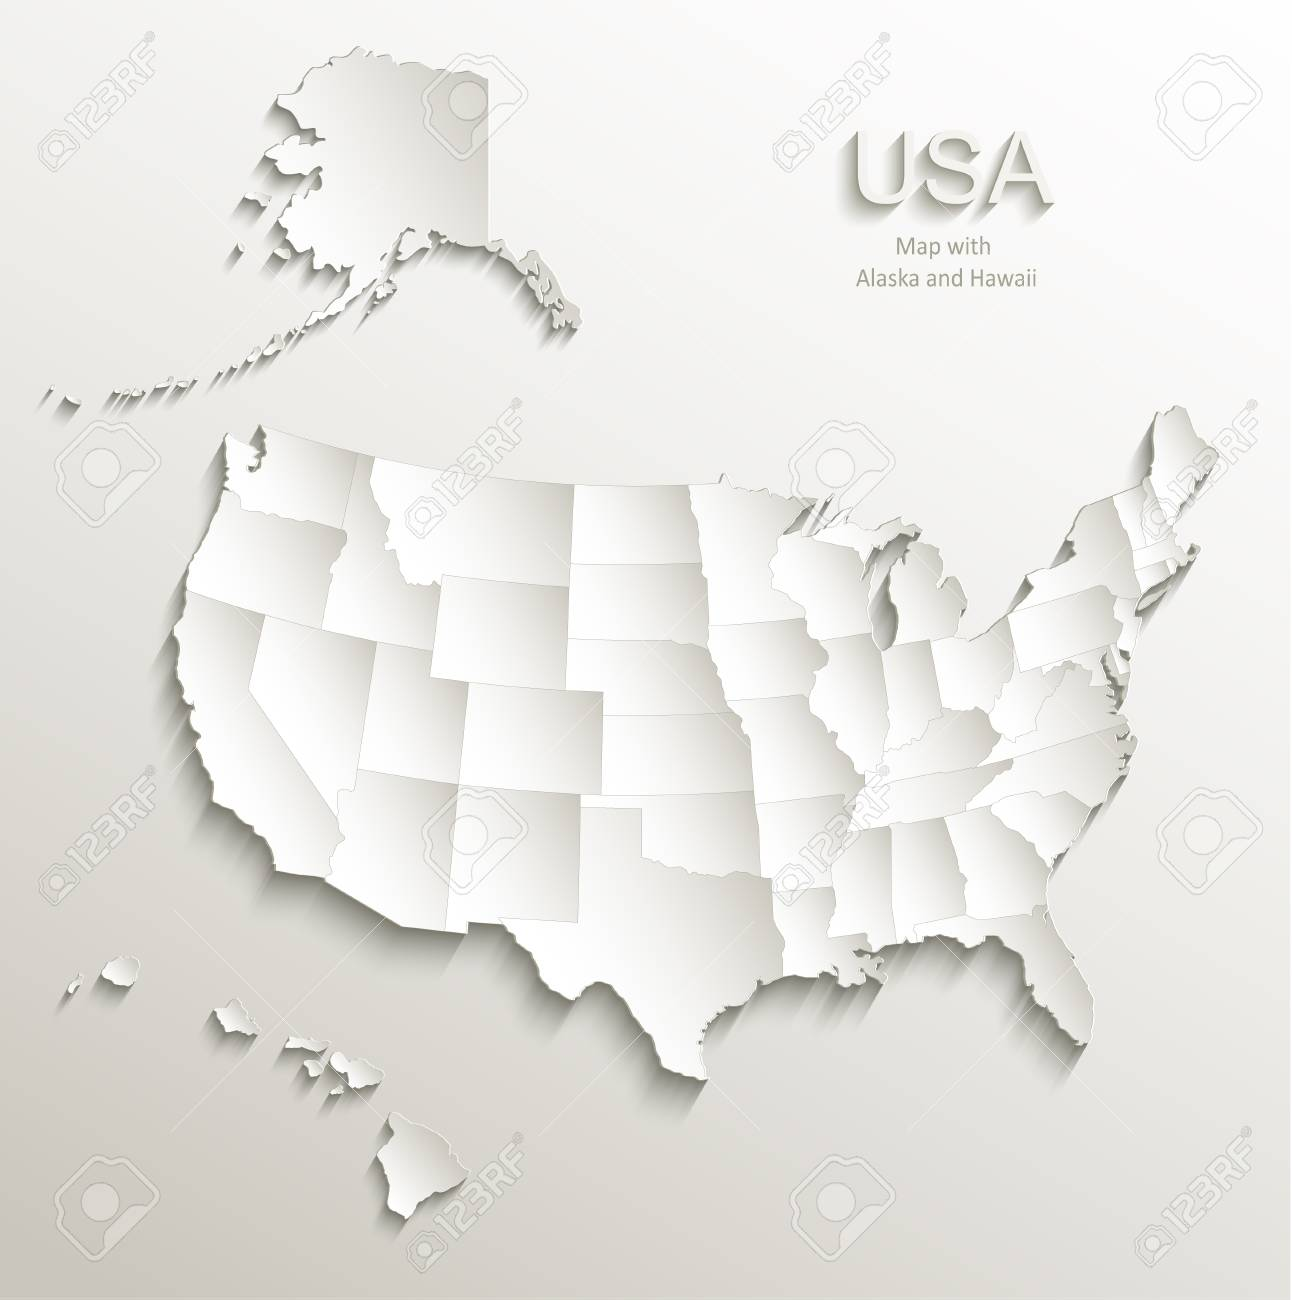 Usa Map With Alaska And Hawaii Separate States Individual Card